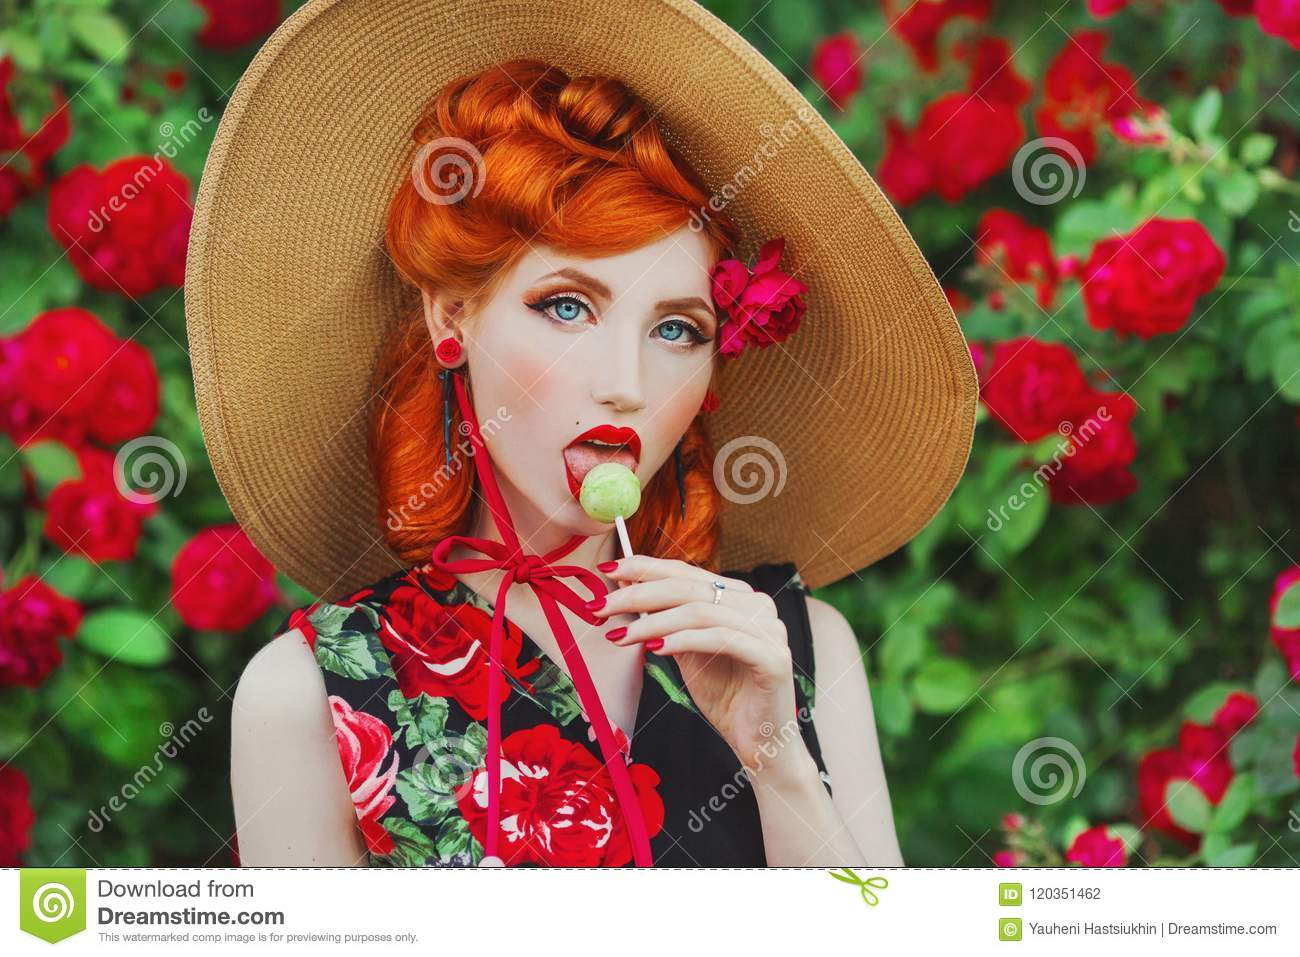 Retro girl with red lips in a dress with a print of roses with yellow lollipop on summer background. Young redhead model in a hat